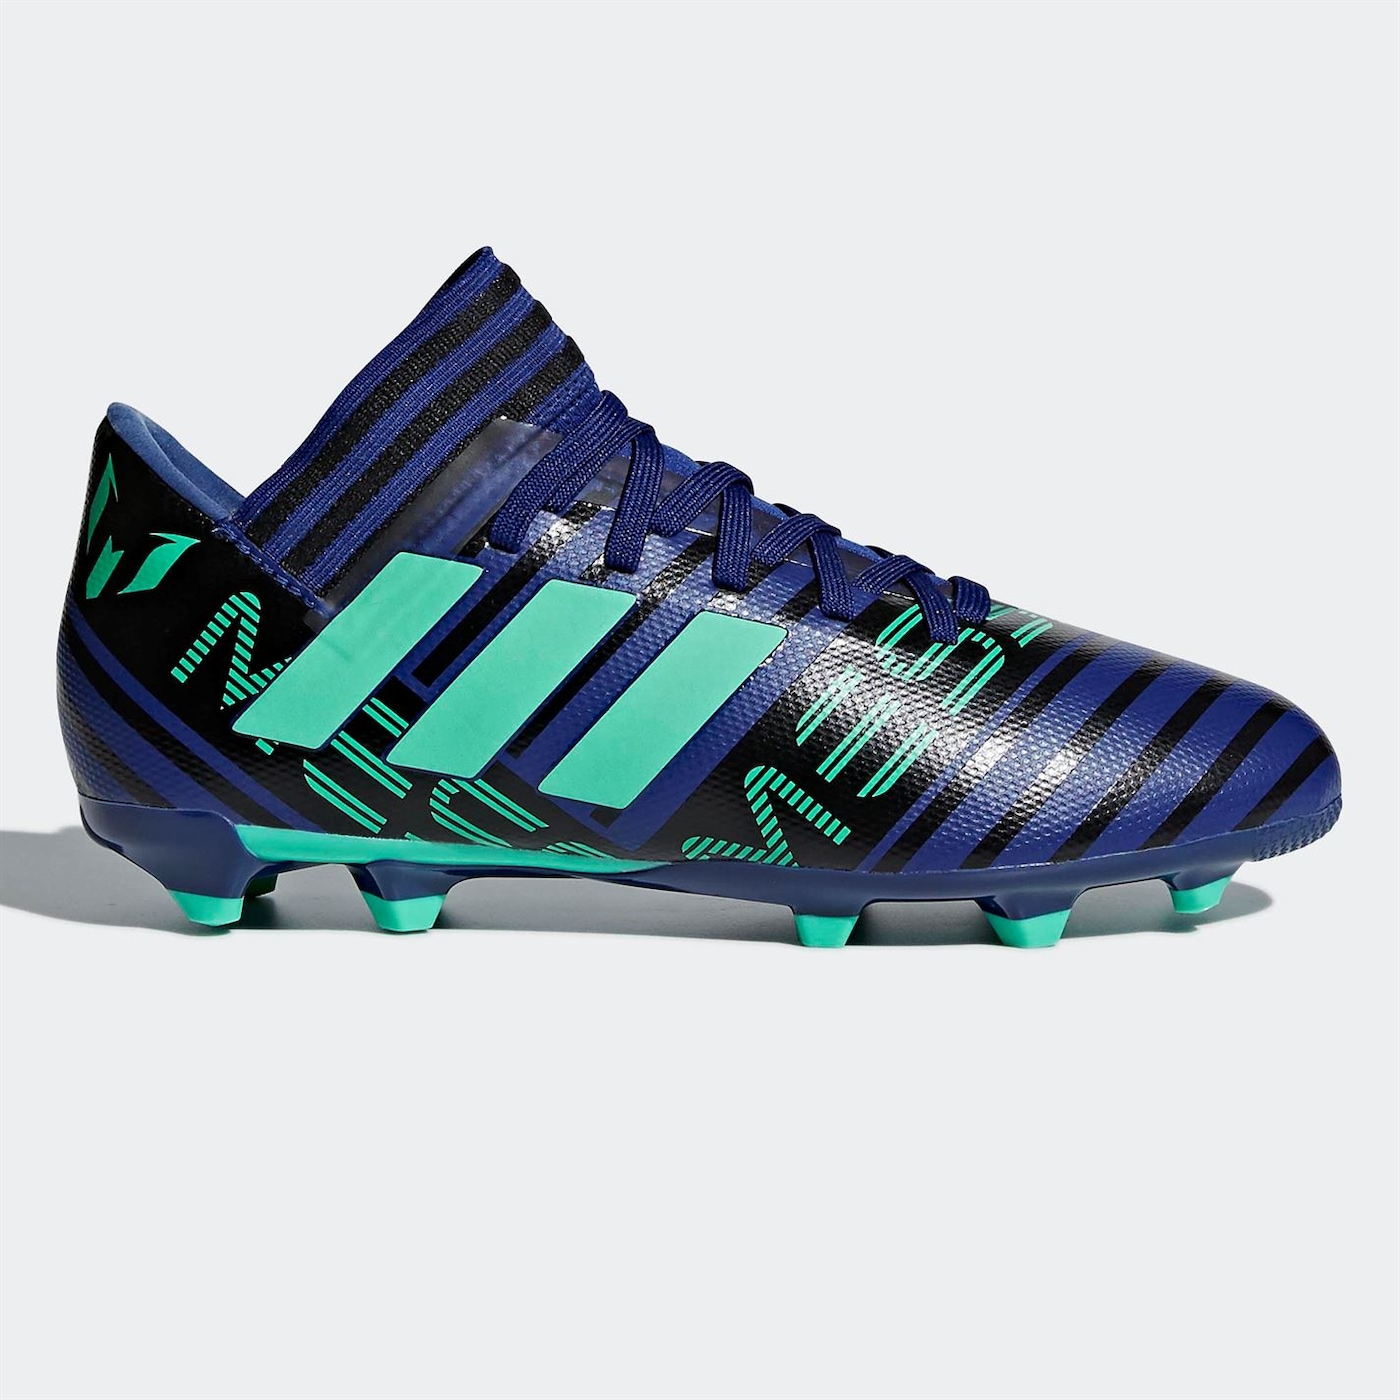 Adidas Nemeziz Messi 17.3 FG Junior Football Boots